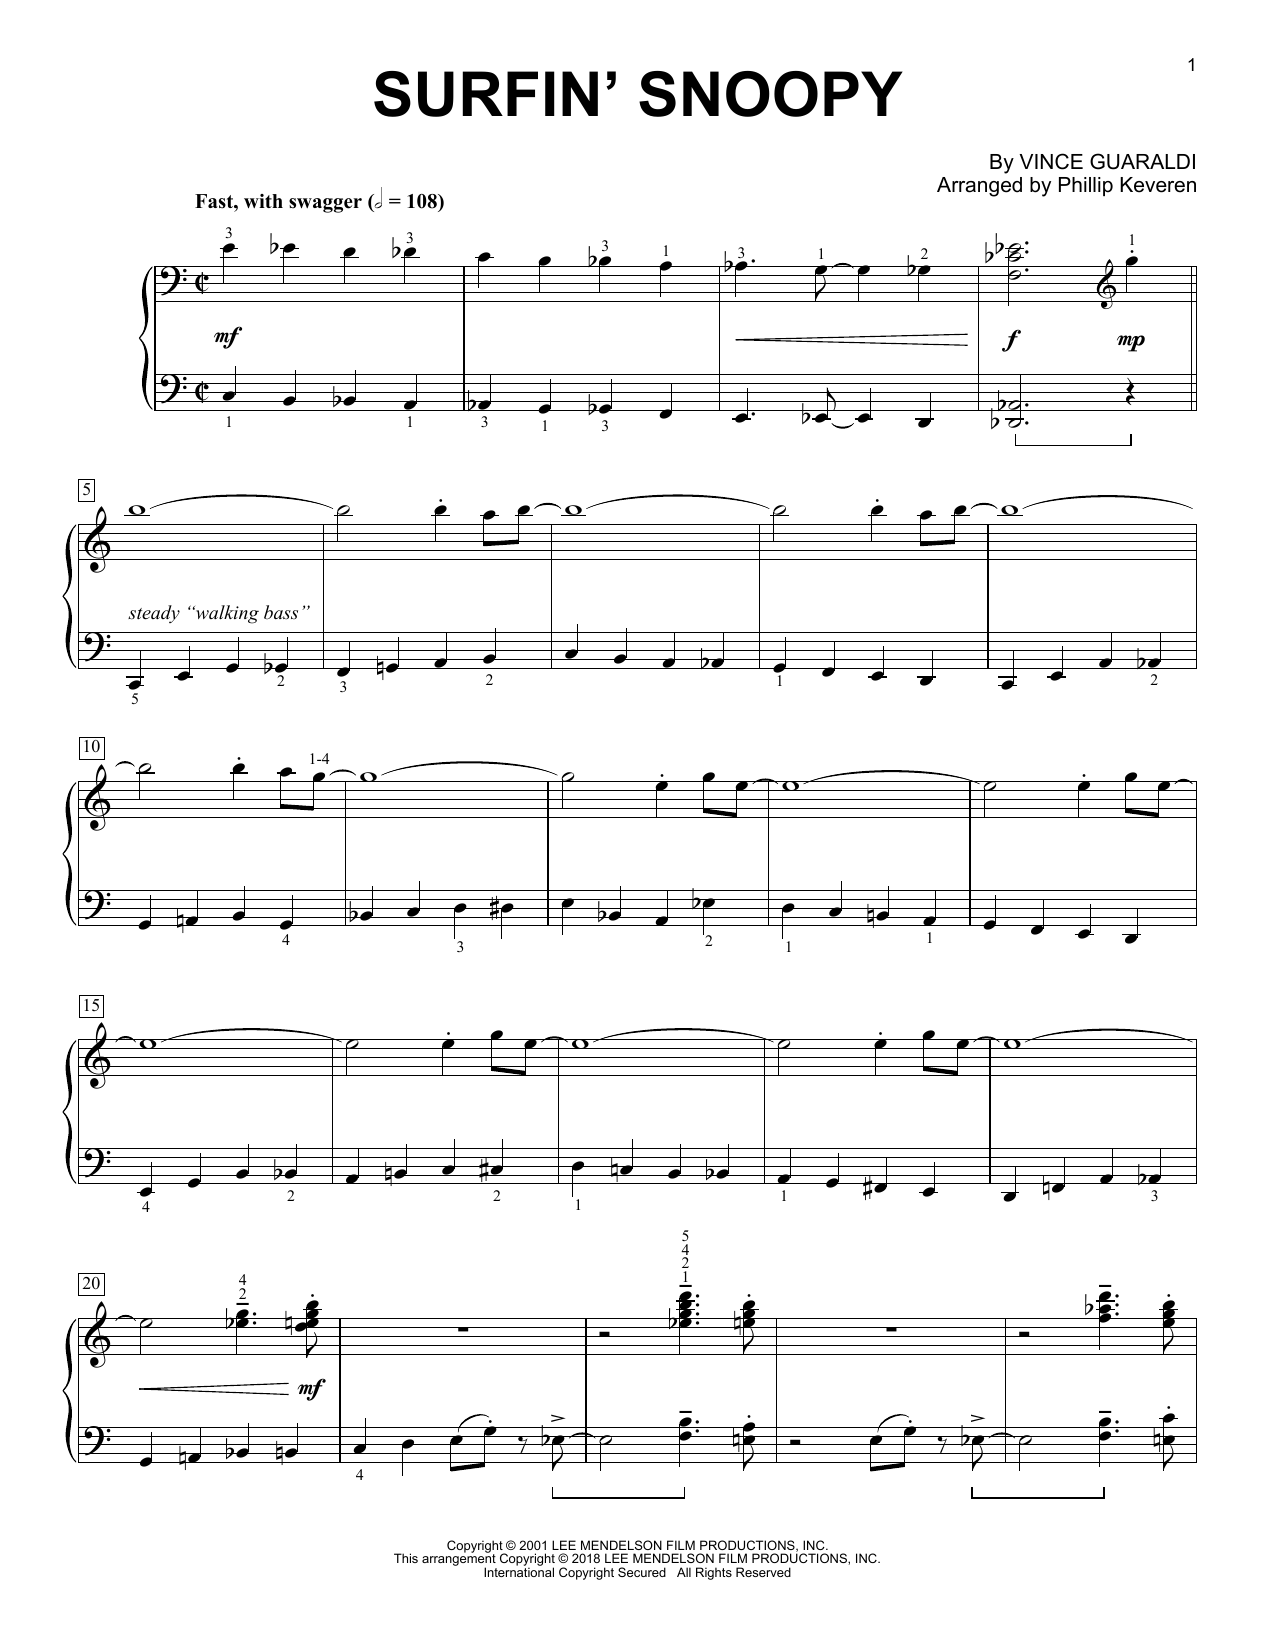 Vince Guaraldi Surfin' Snoopy (arr. Phillip Keveren) sheet music notes and chords. Download Printable PDF.